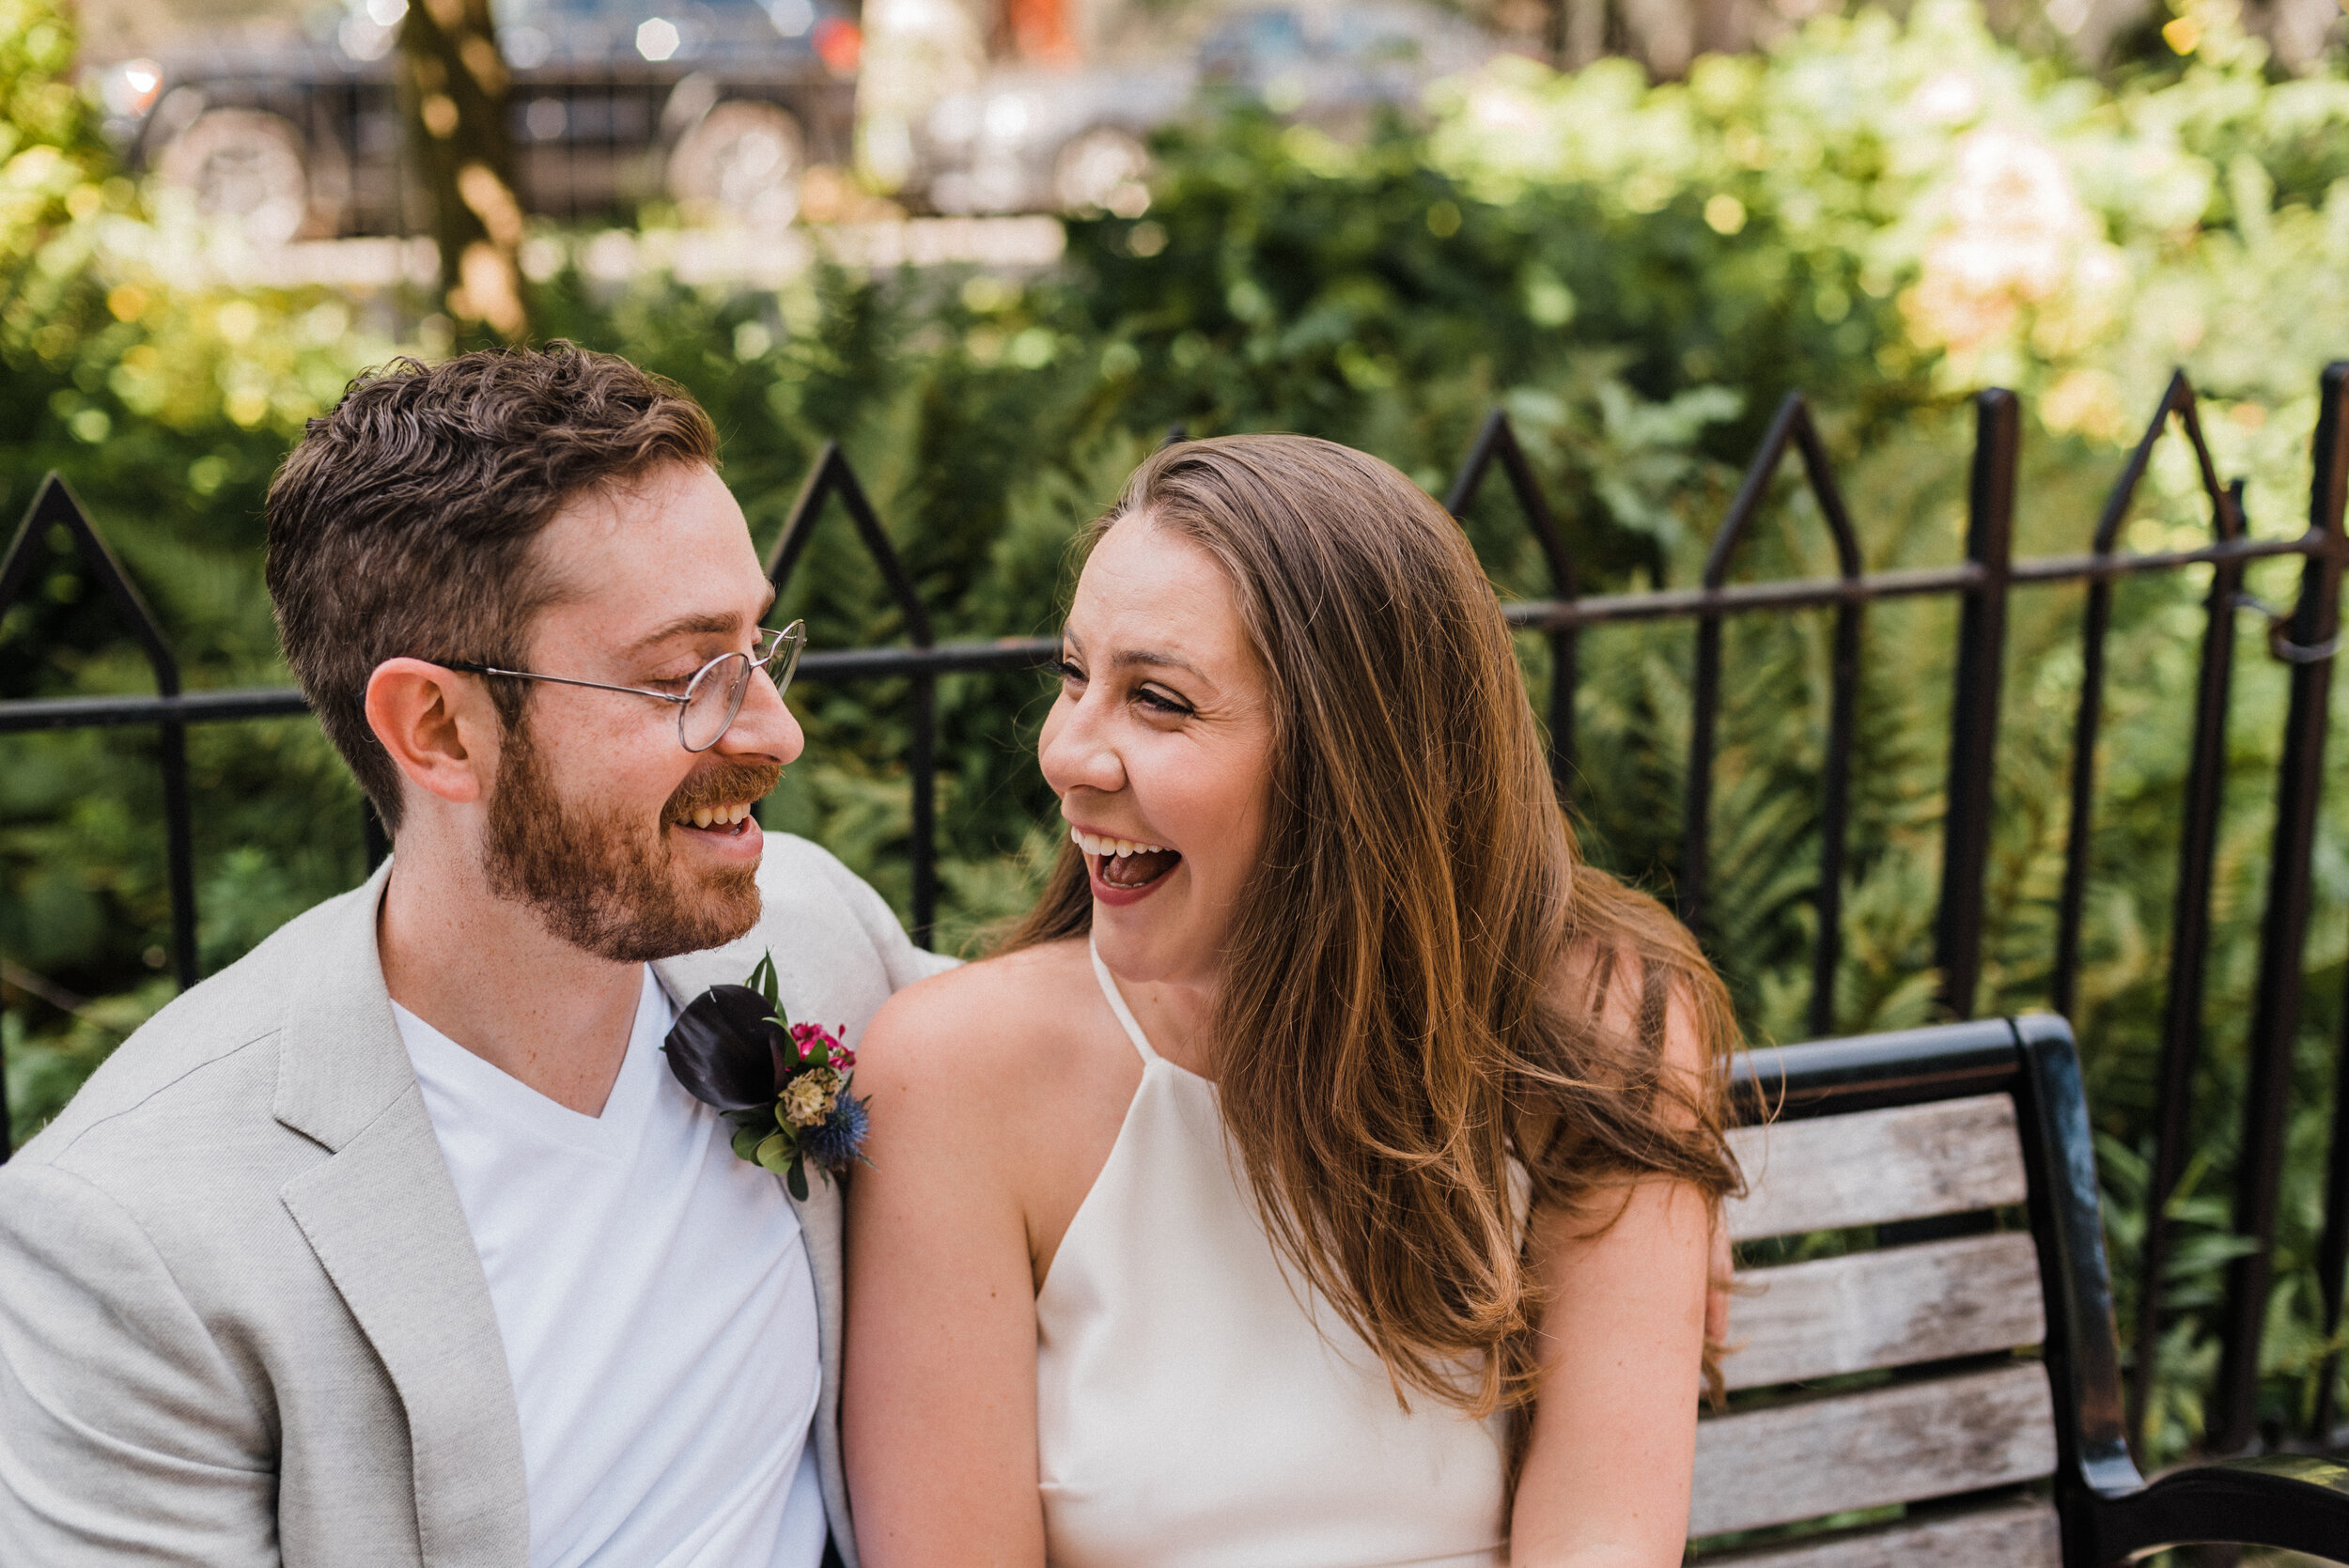 Wedding couple laughing together on a park bench after their outdoor elopement.